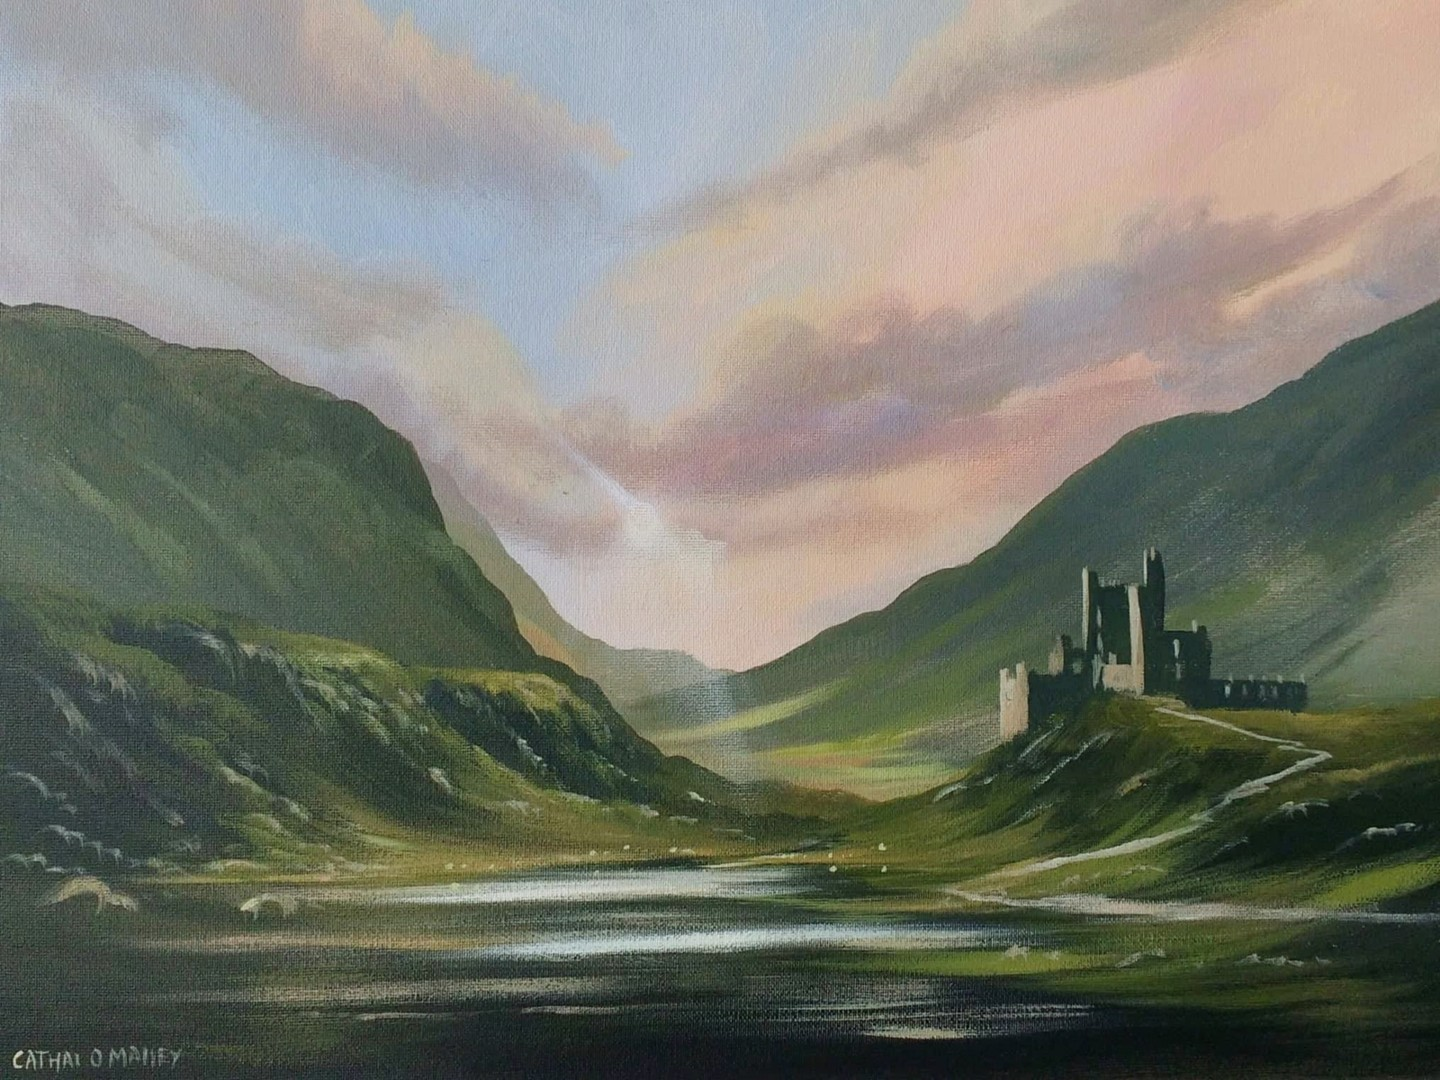 Cathal O Malley - valley of the clan